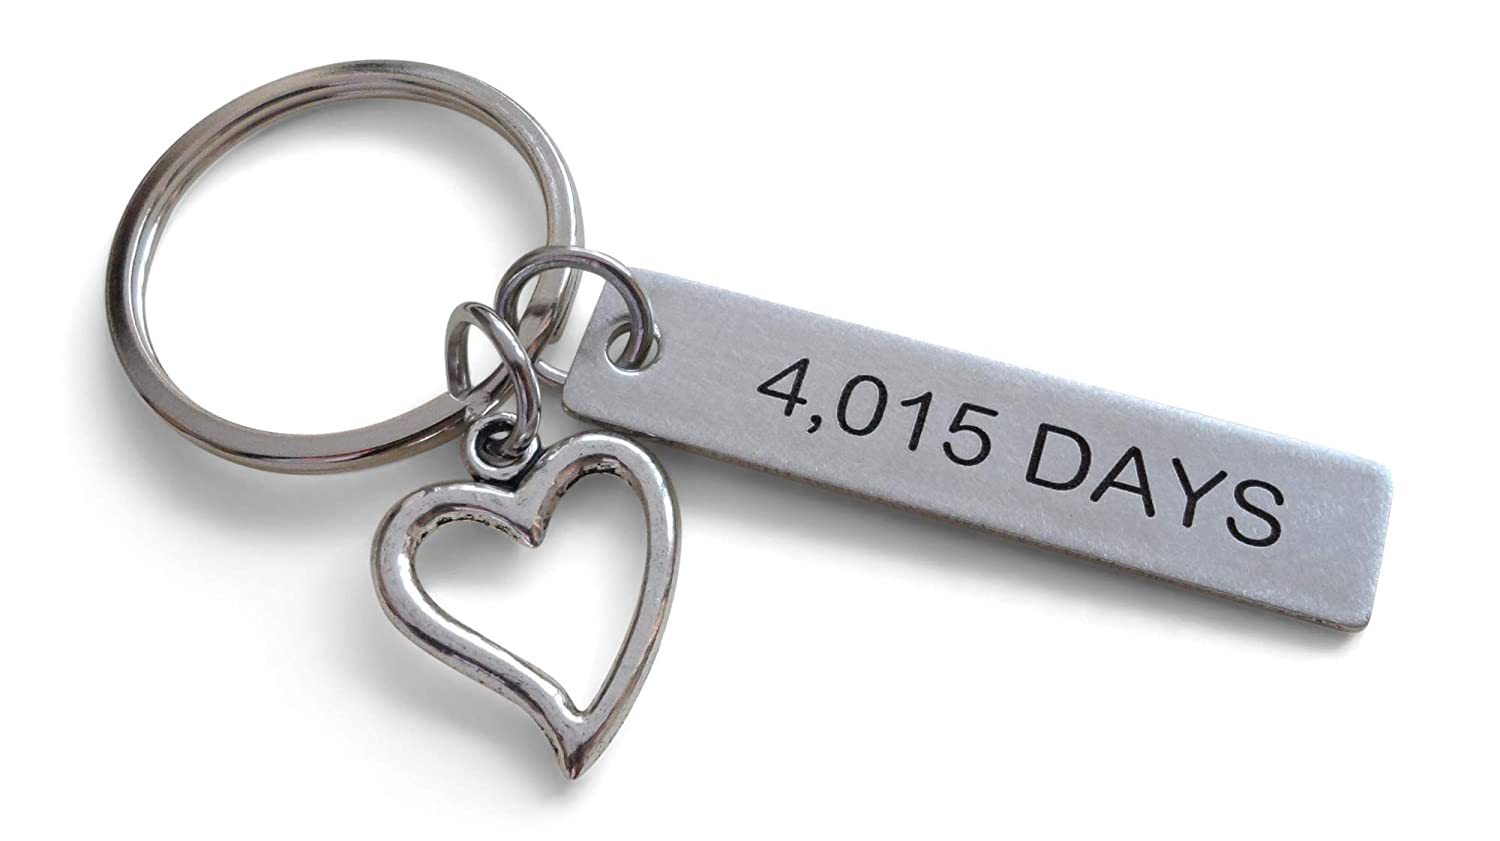 Amazon Stainless Steel Tag Keychain Engraved With4015 Days